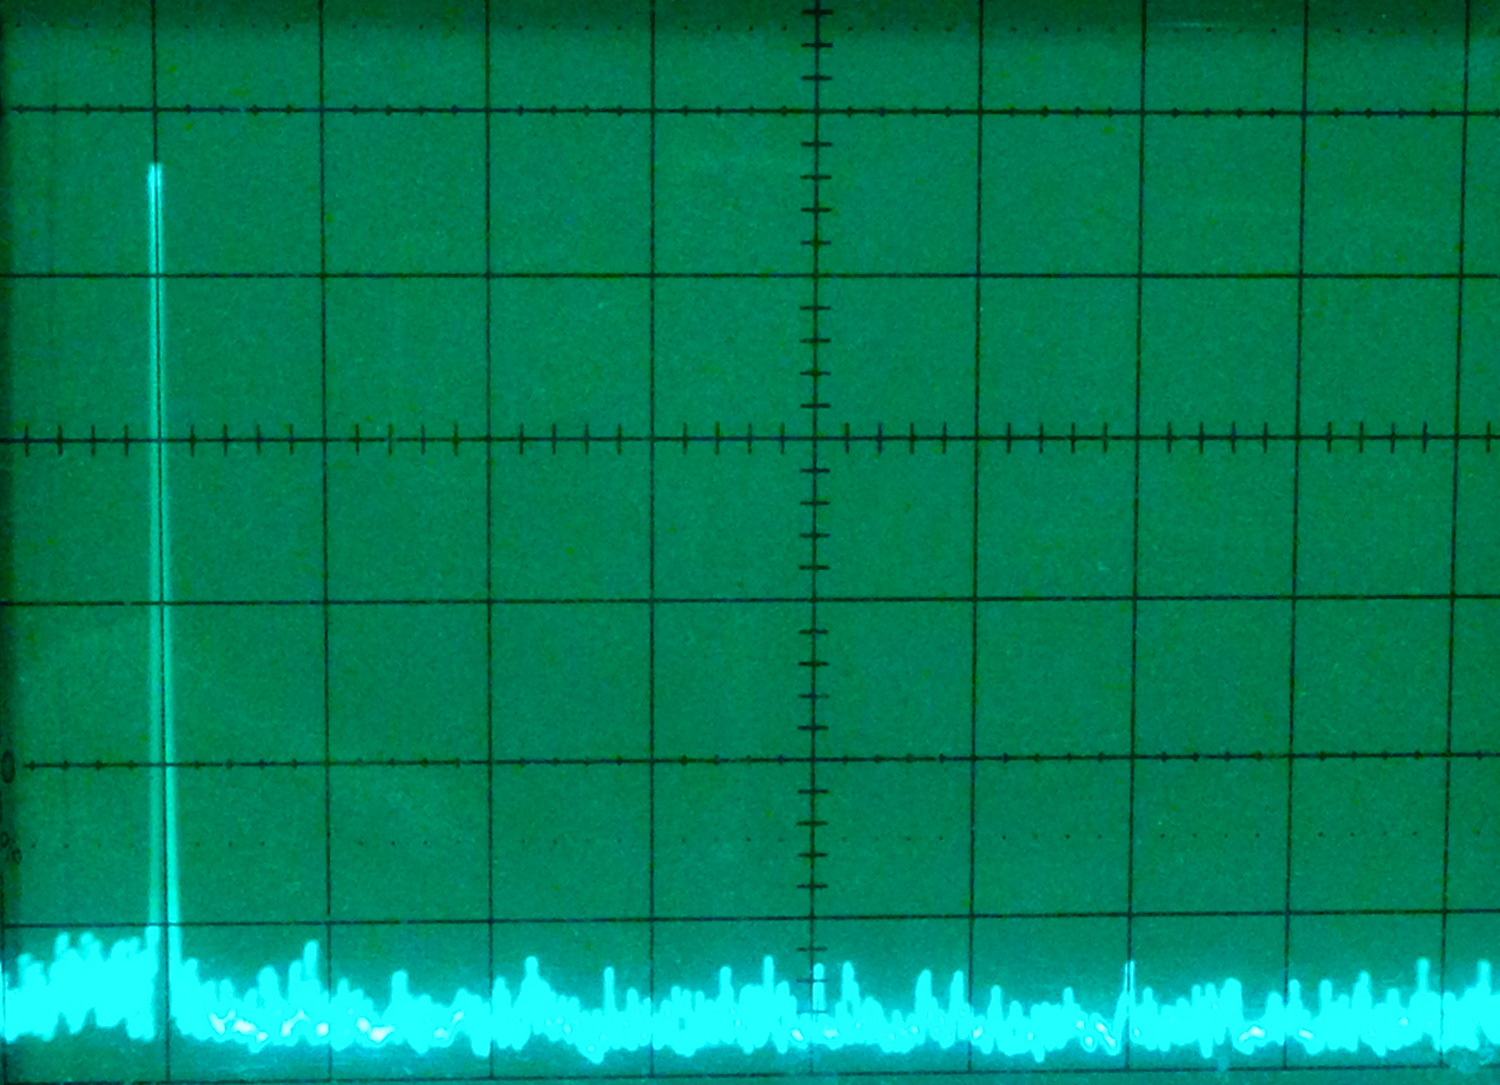 AD9851 with a 7MHz signal on the spectrum analyzer. (5MHz horizontal steps)